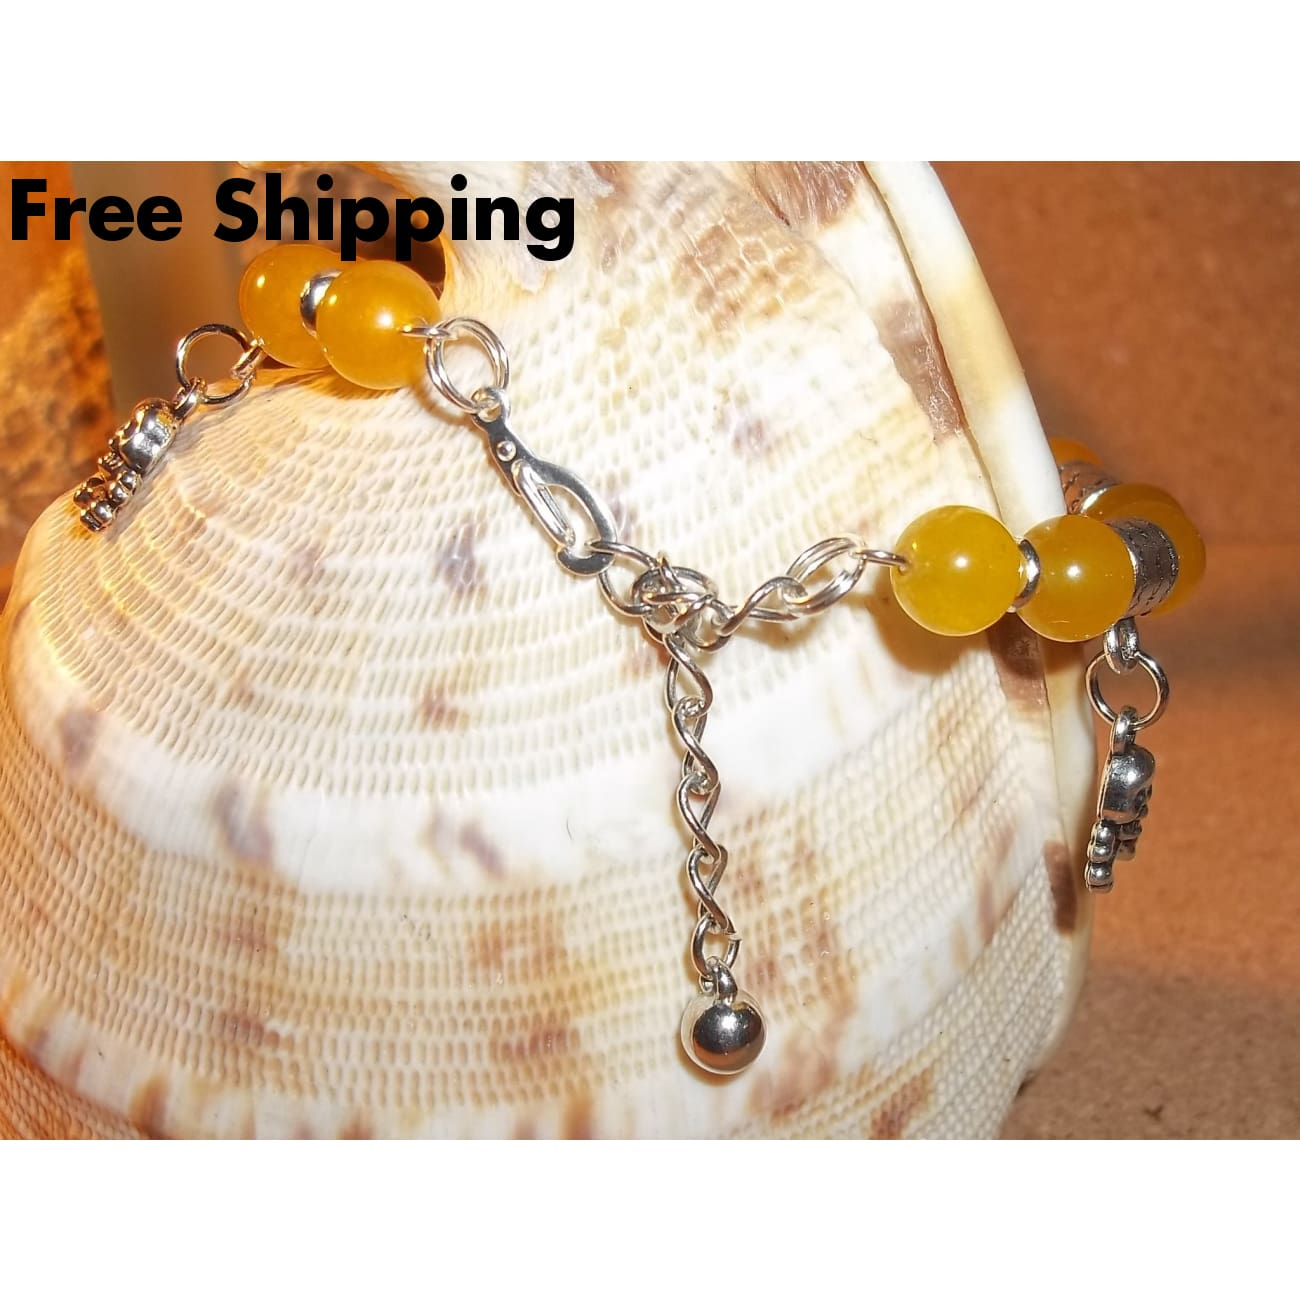 Skull & Crossbones Yellow Jade Silver Hand Crafted Charm Bangle Bracelet - Bracelets